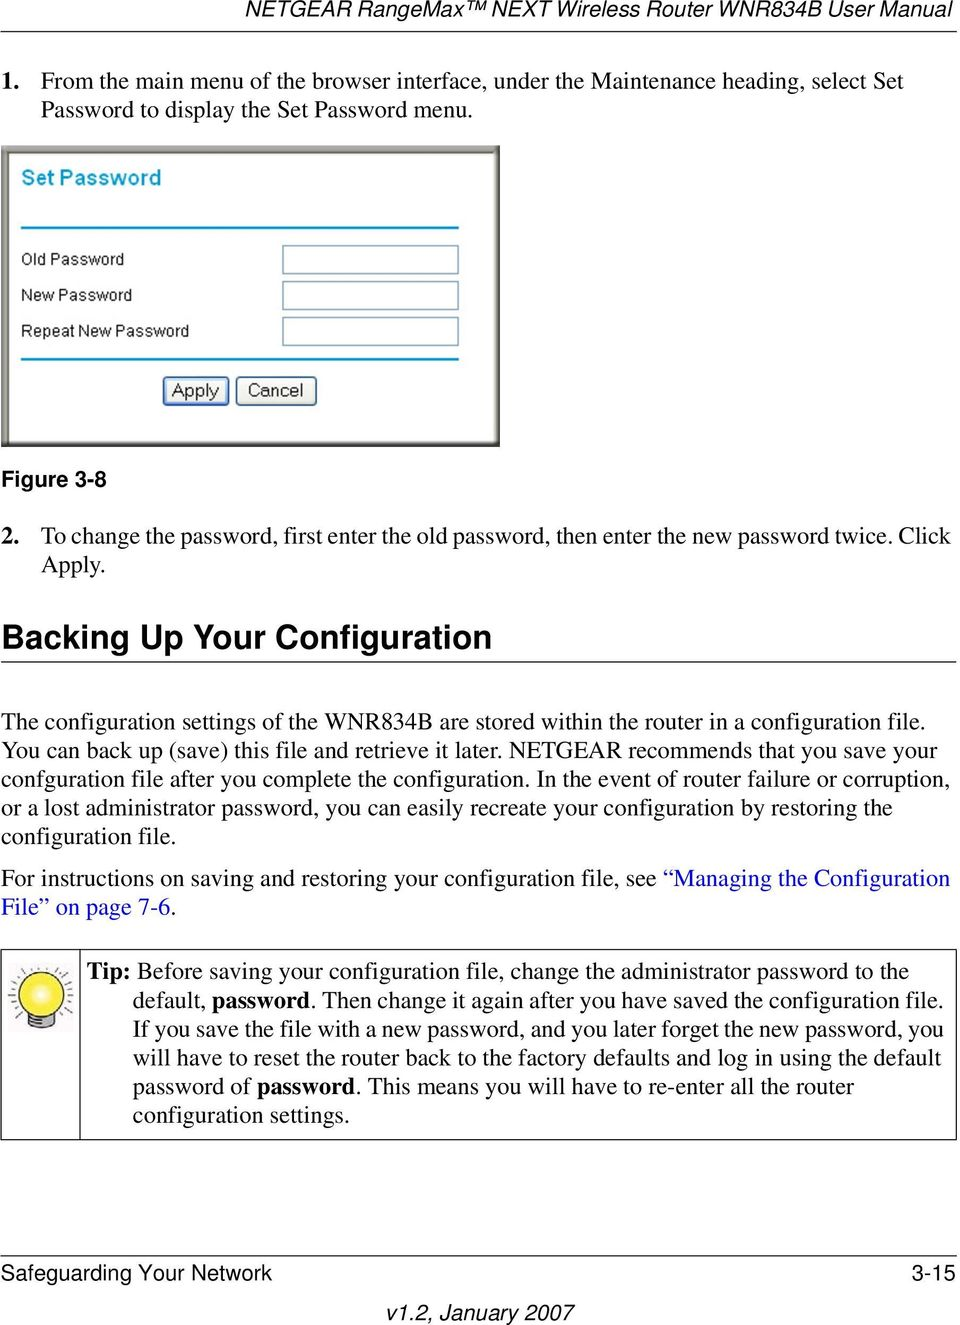 Backing Up Your Configuration The configuration settings of the WNR834B are stored within the router in a configuration file. You can back up (save) this file and retrieve it later.